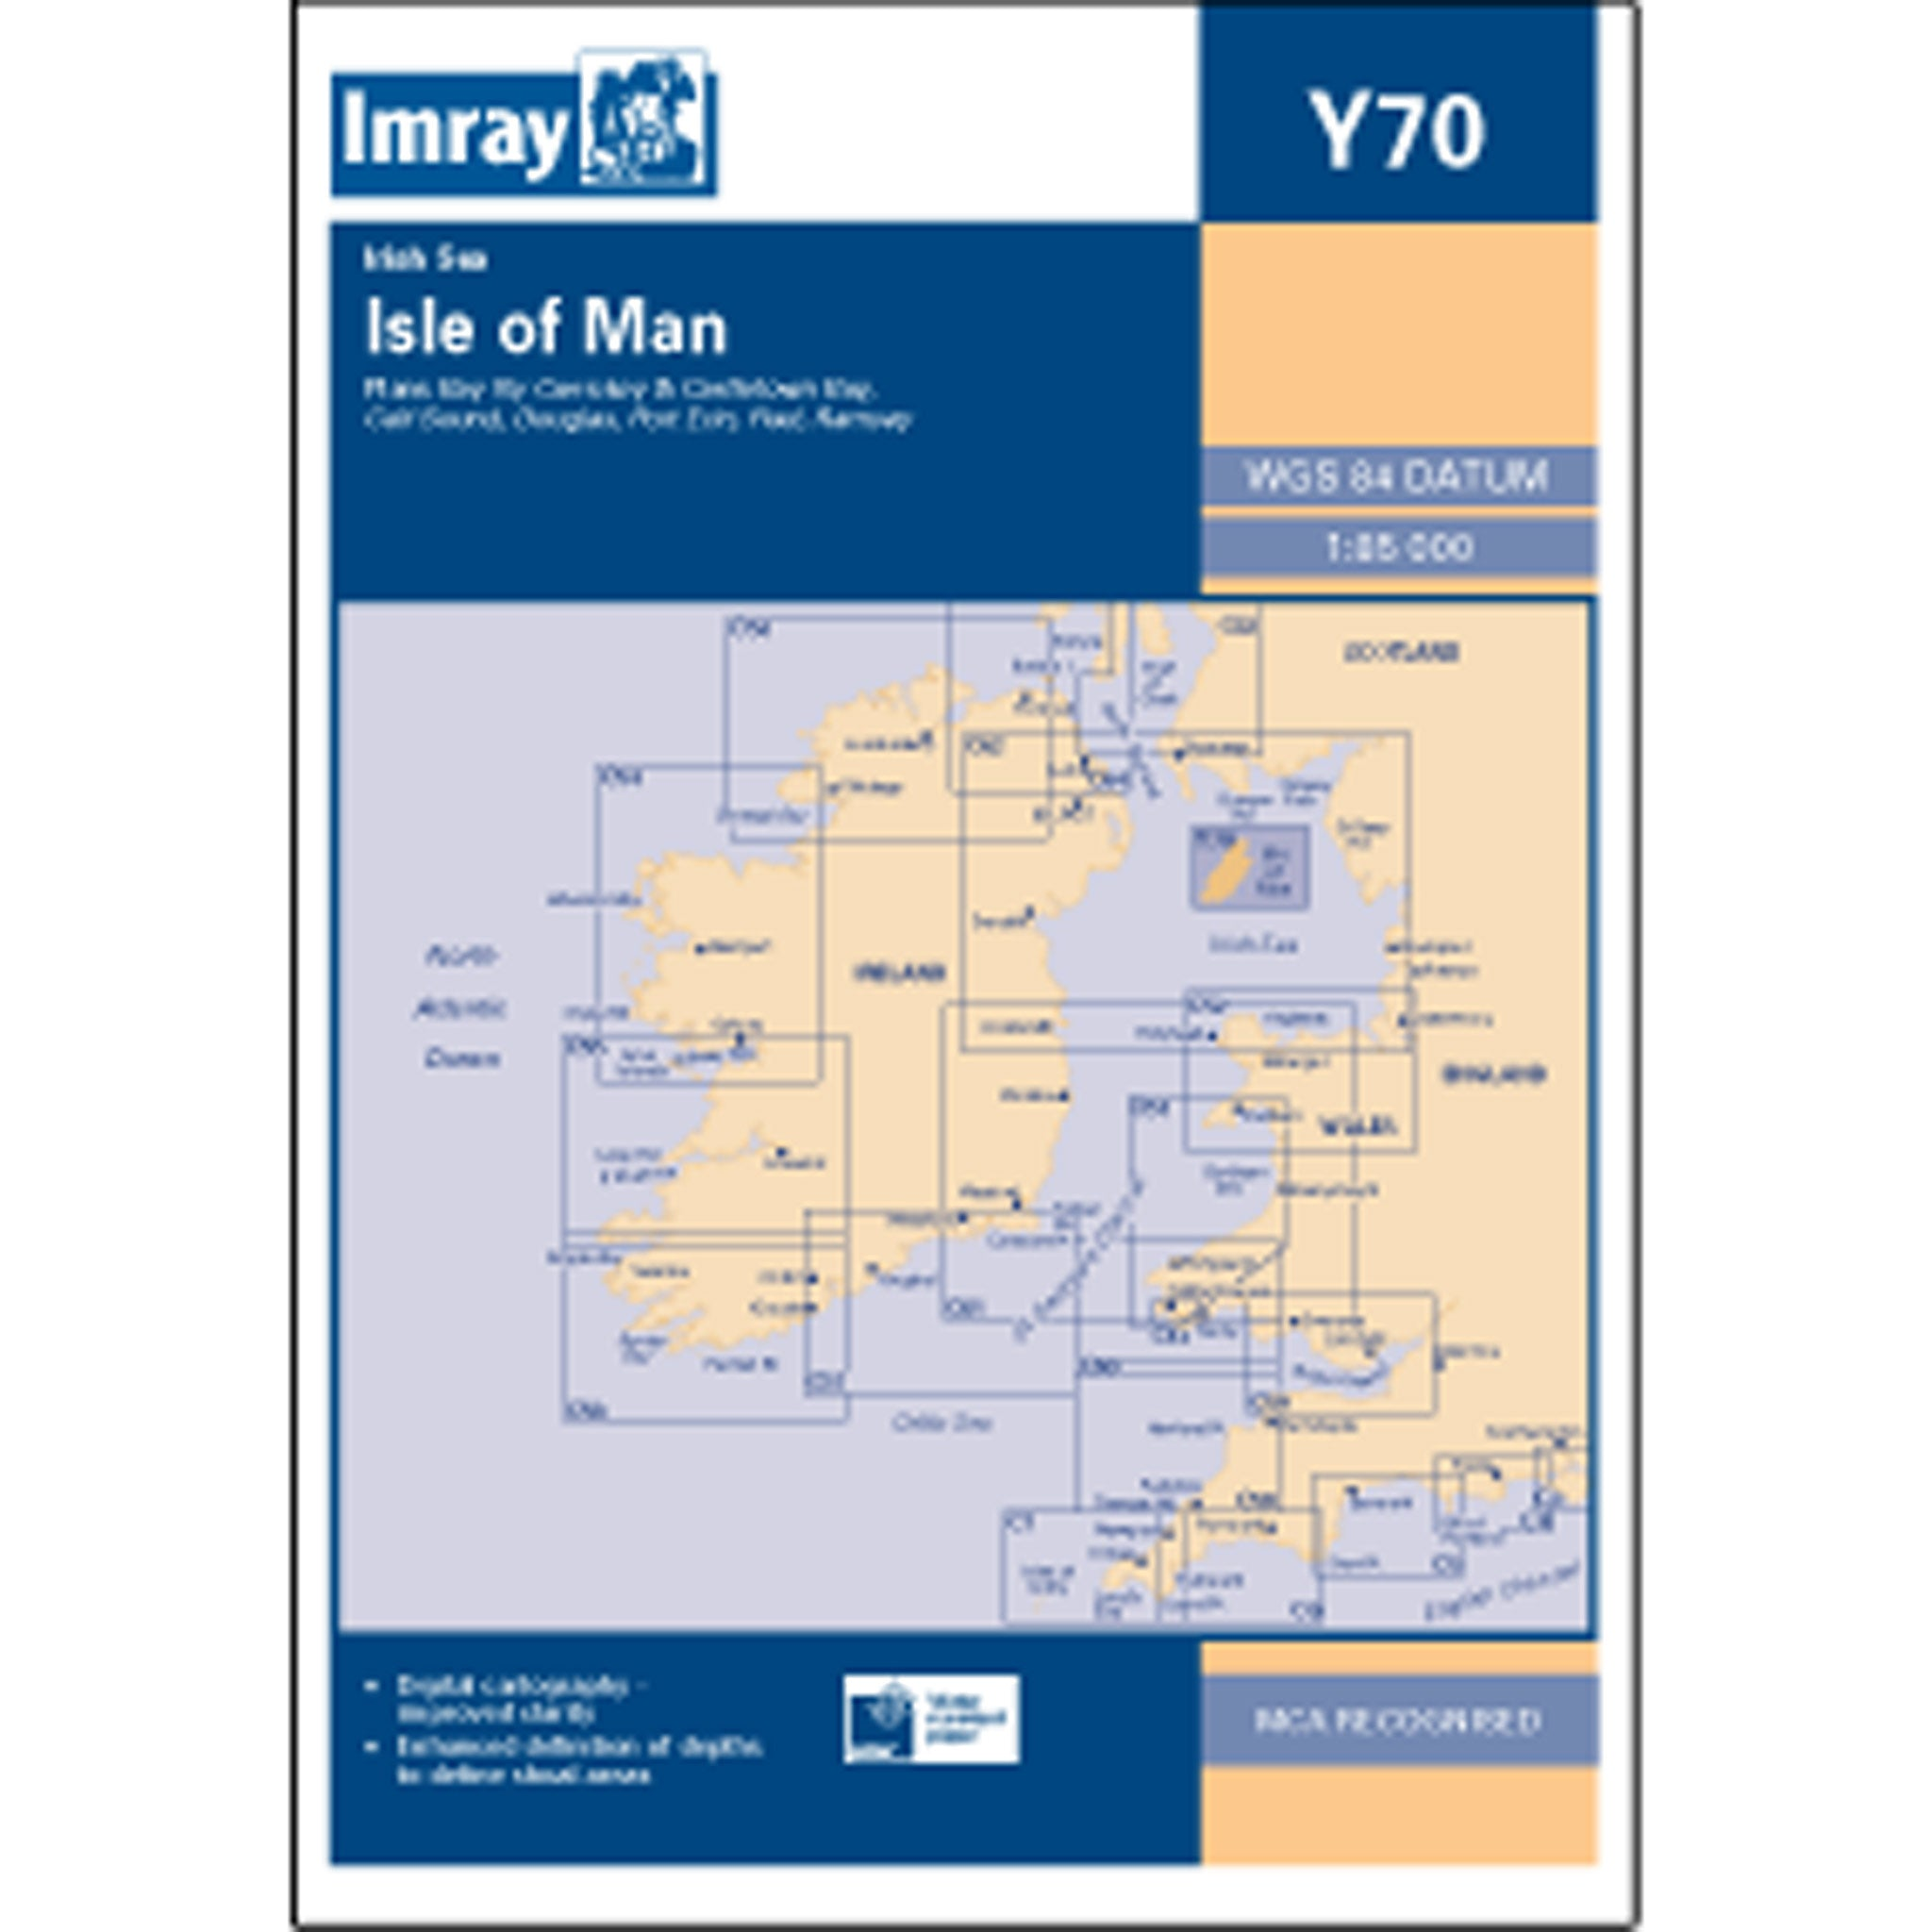 Imray Y70 Isle of Man